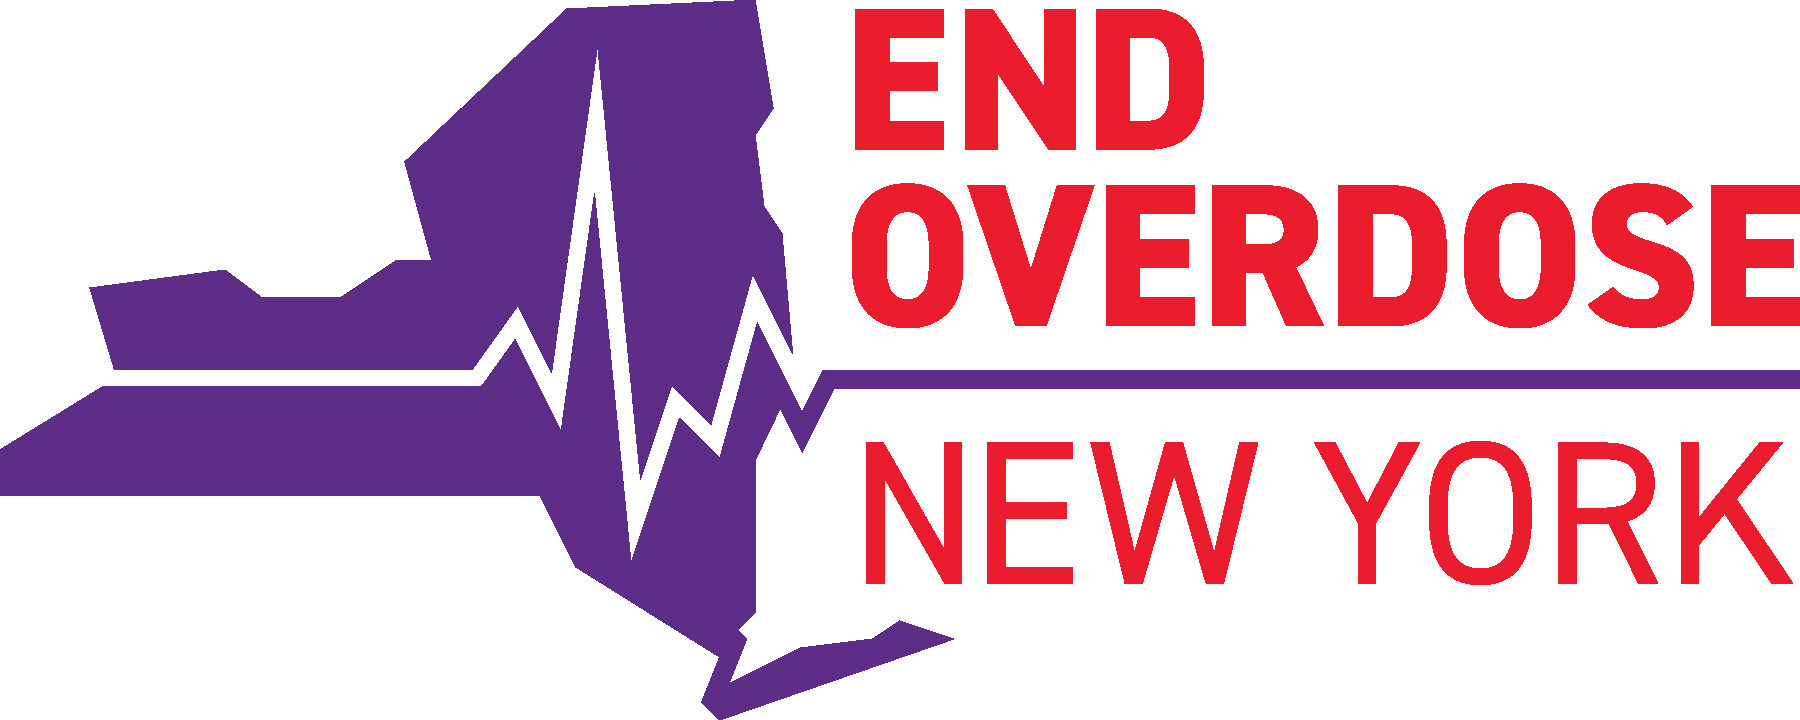 End Overdose NY